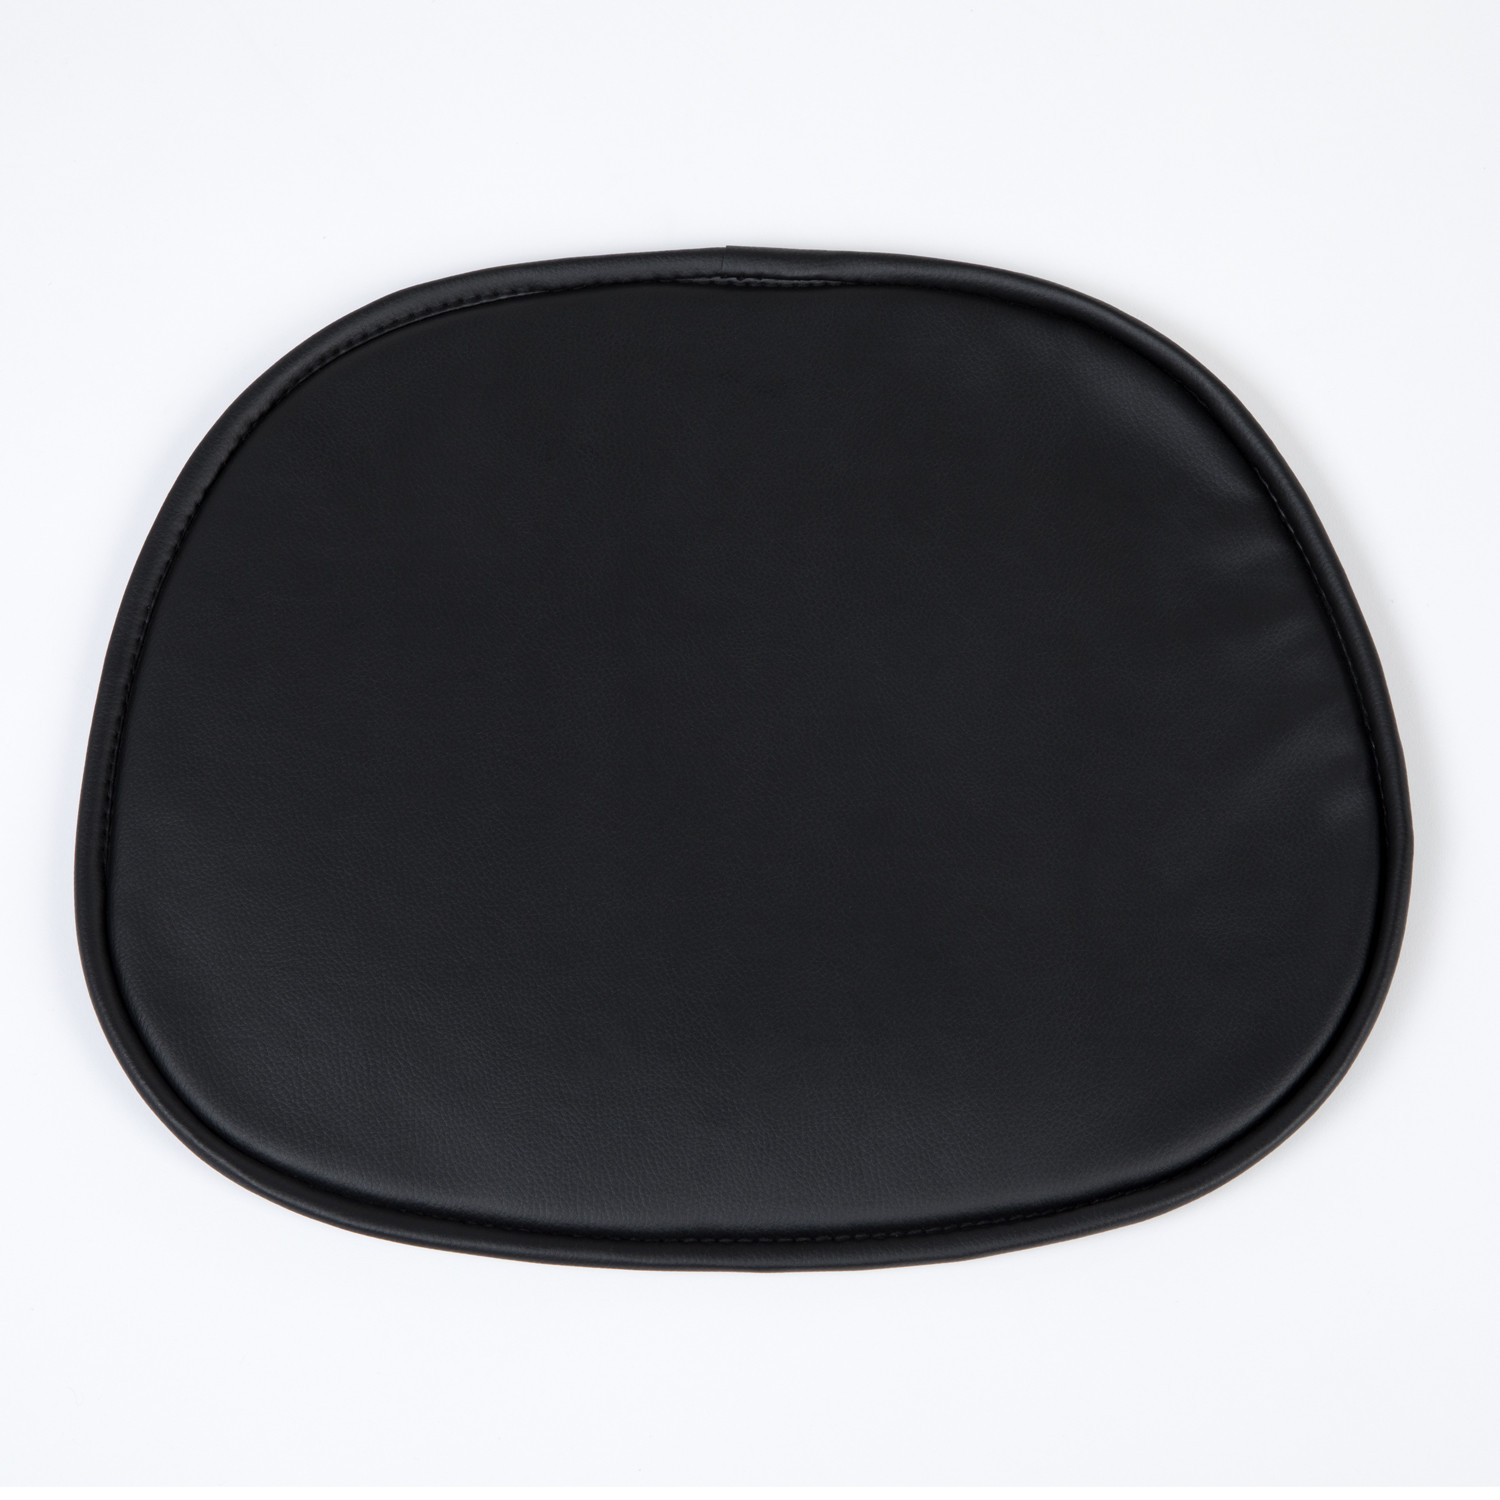 Brich Scand Chair Cushion, gallery image 1